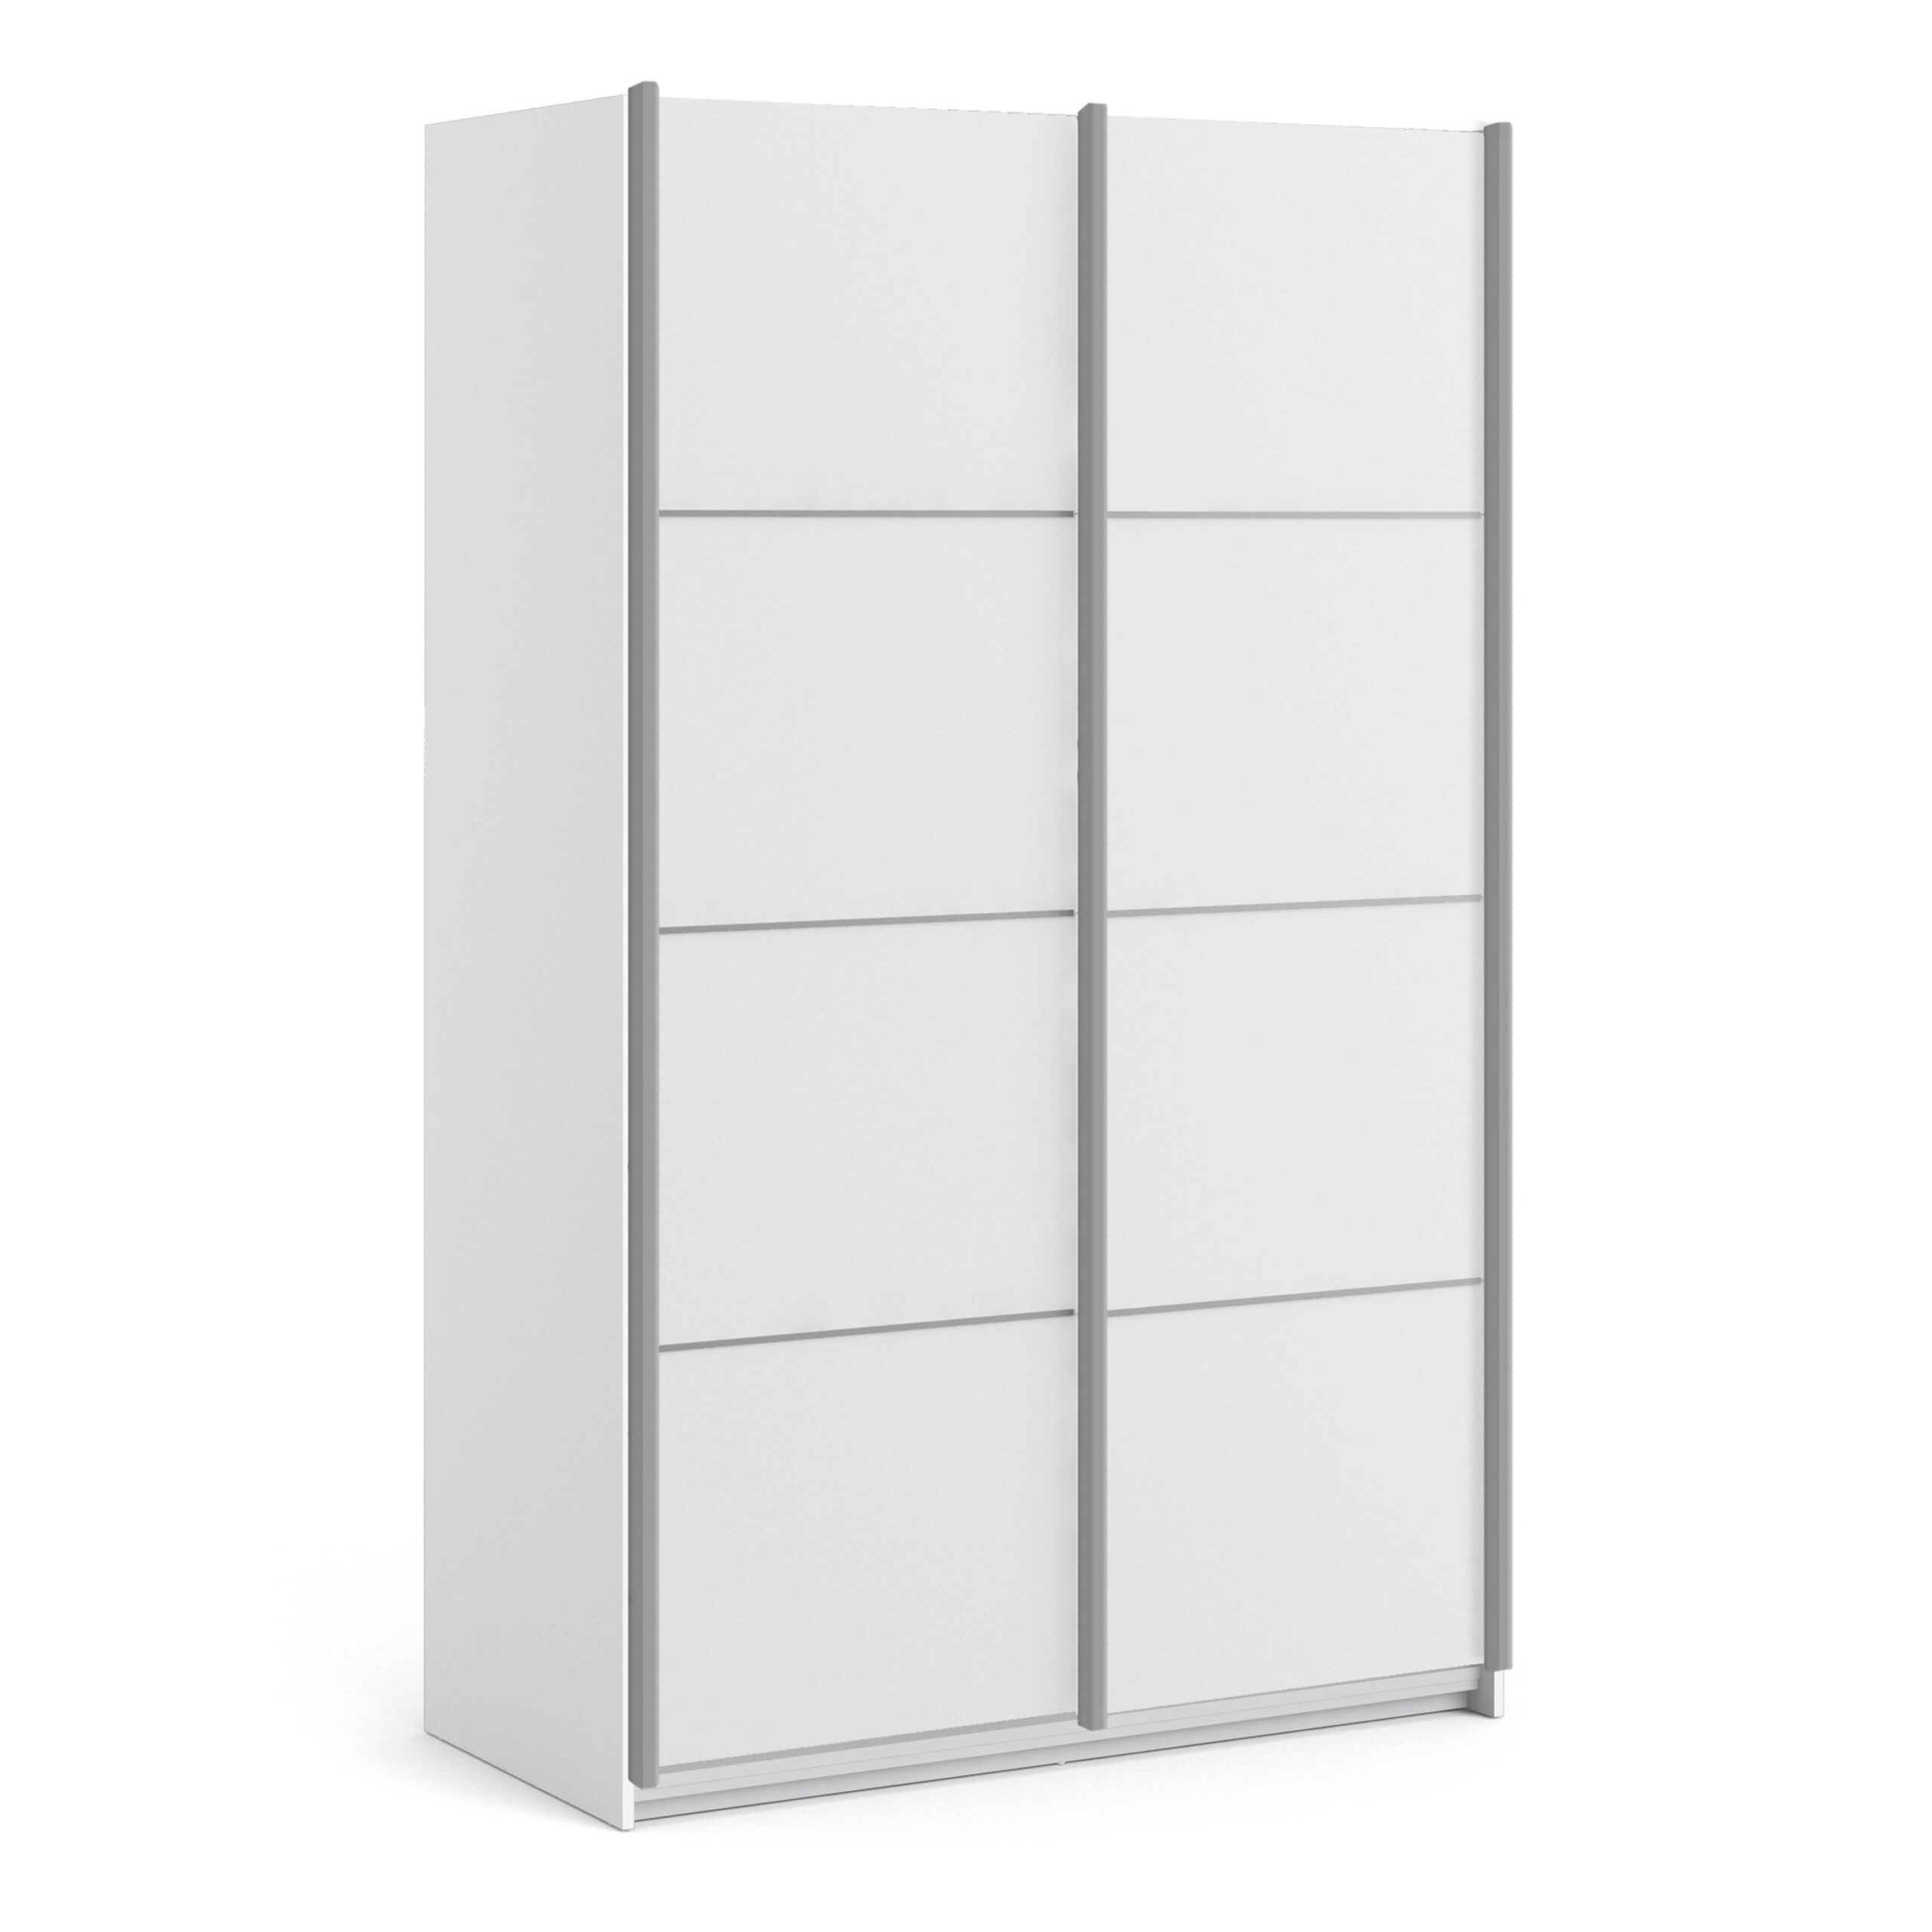 Phillipe Sliding Wardrobe 120cm in White with White Doors with 5 Shelves